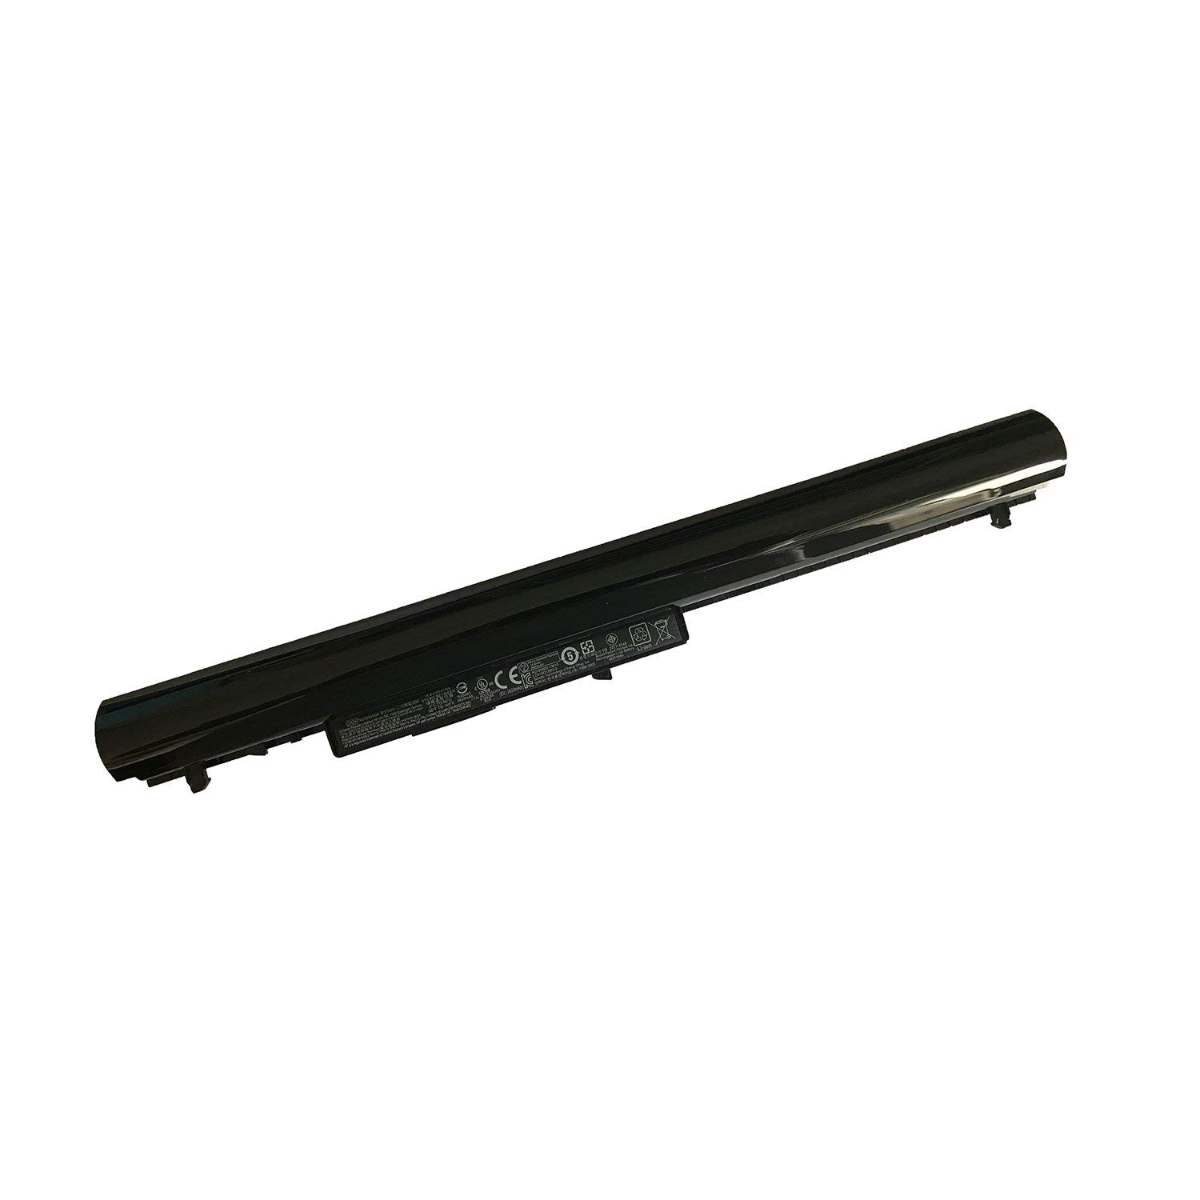 Μπαταρία Laptop - Battery for HP 15-D000EK 15-D000SE 15-D000SH 15-D000SIA 15-D000SK 15-D000SL 15-D000SP 15-D000SR 15-D000SS 15-D000 15-D000EE OEM Υψηλής ποιότητας (Κωδ.1-BAT0002)